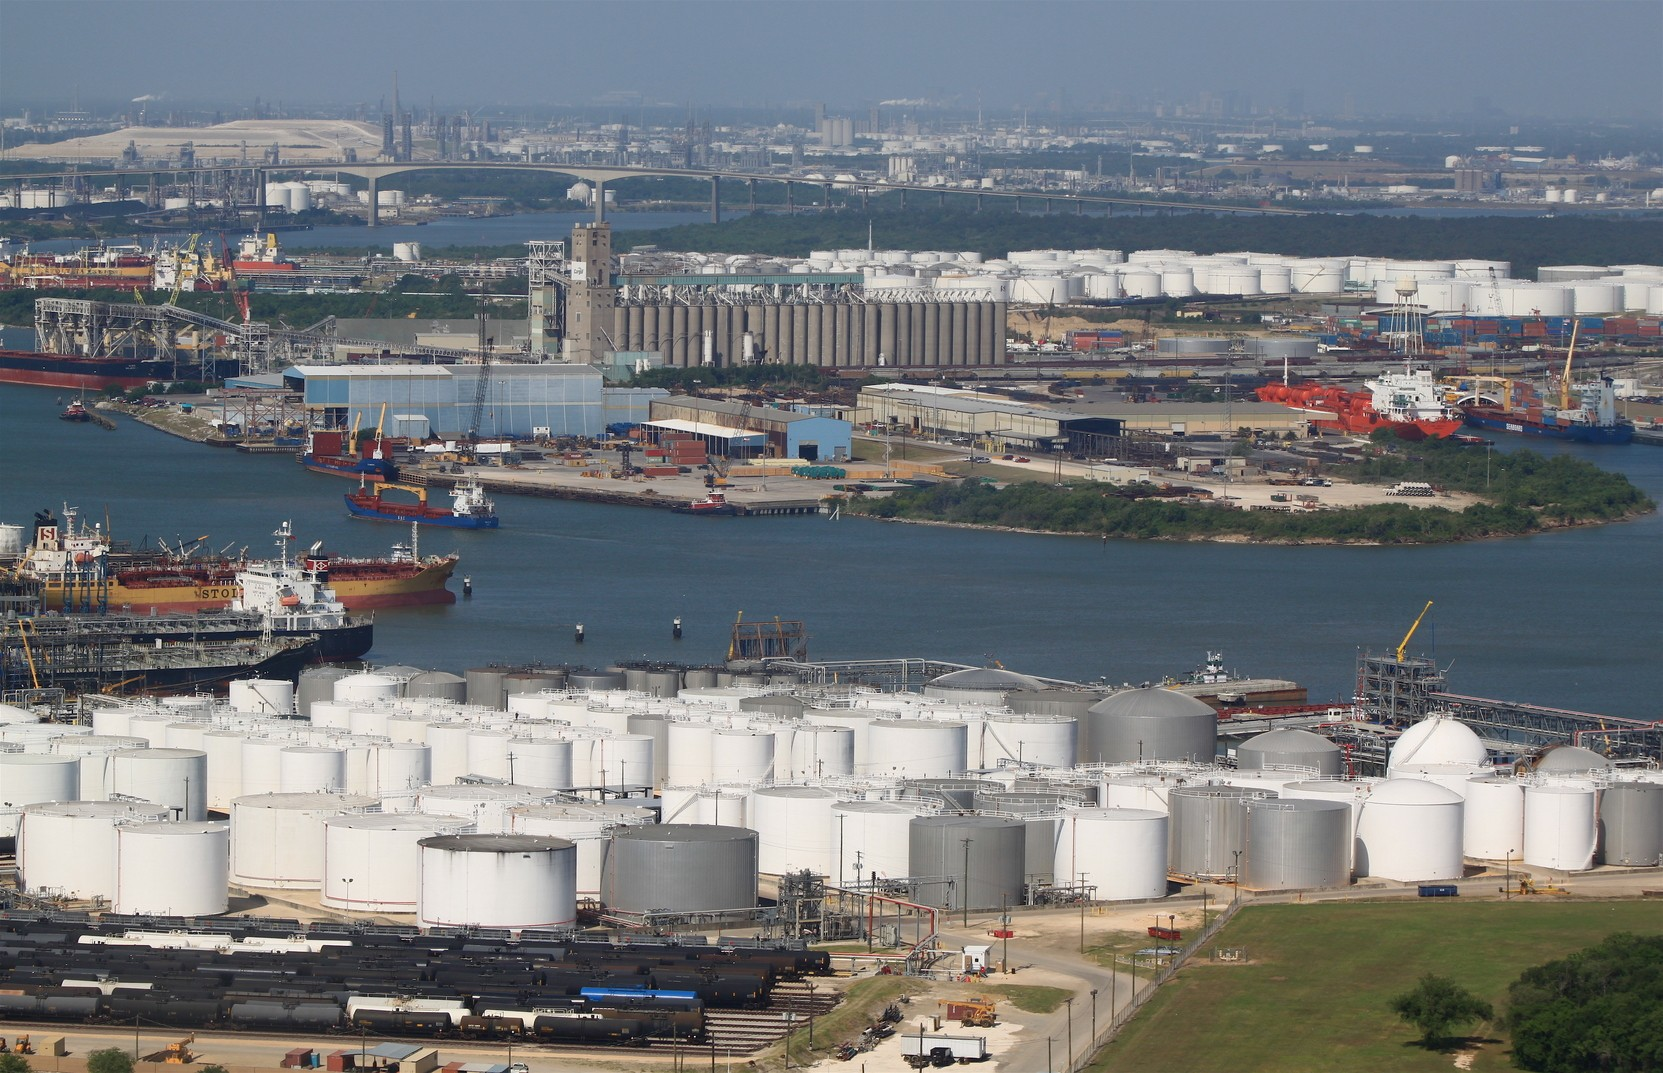 houston ship channel storage tanks and barge traffic from the vopak terminal